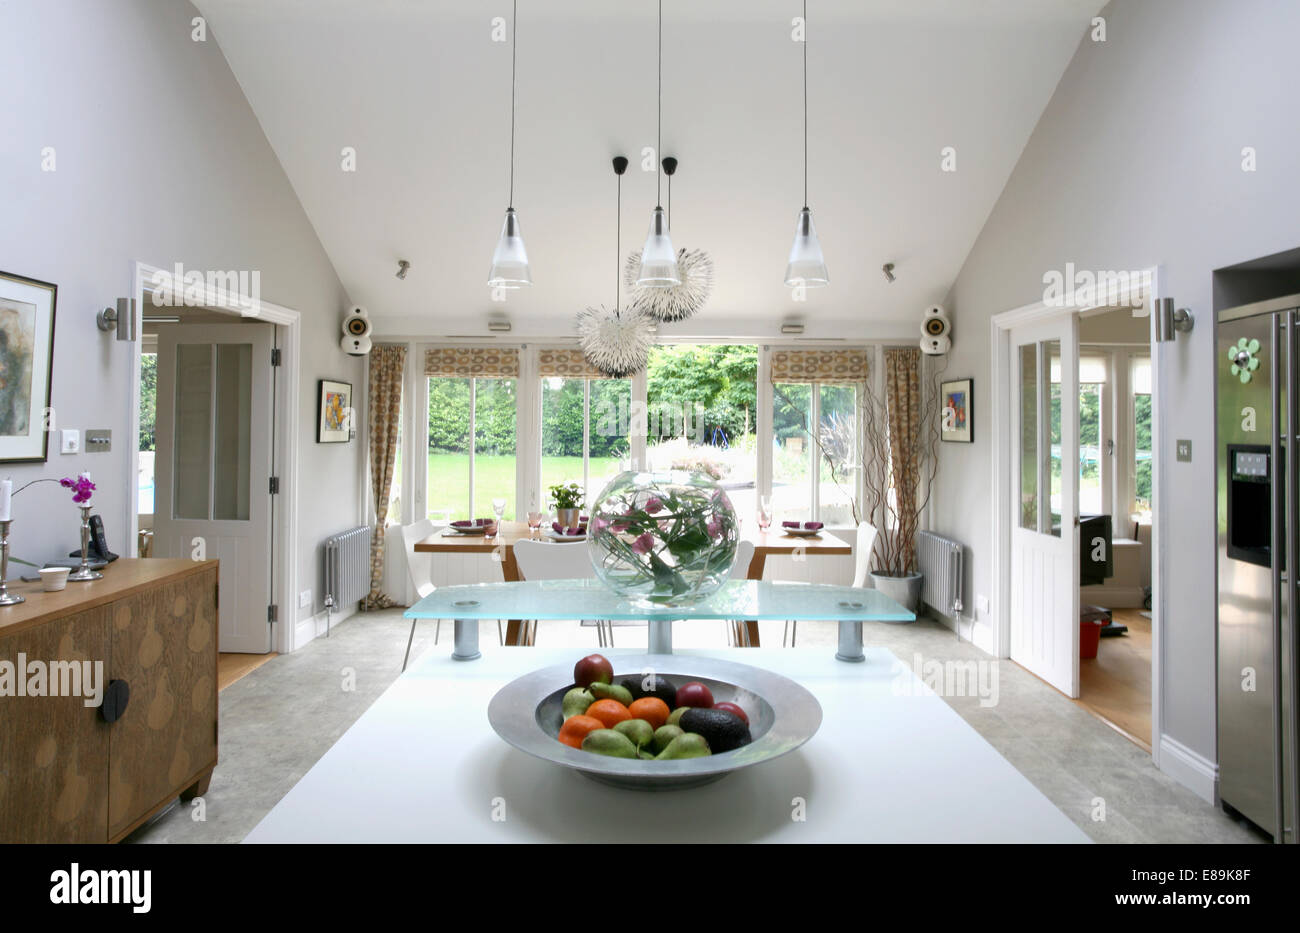 Pendant Lighting Above Island Unit In Large Modern Kitchen And Dining Room